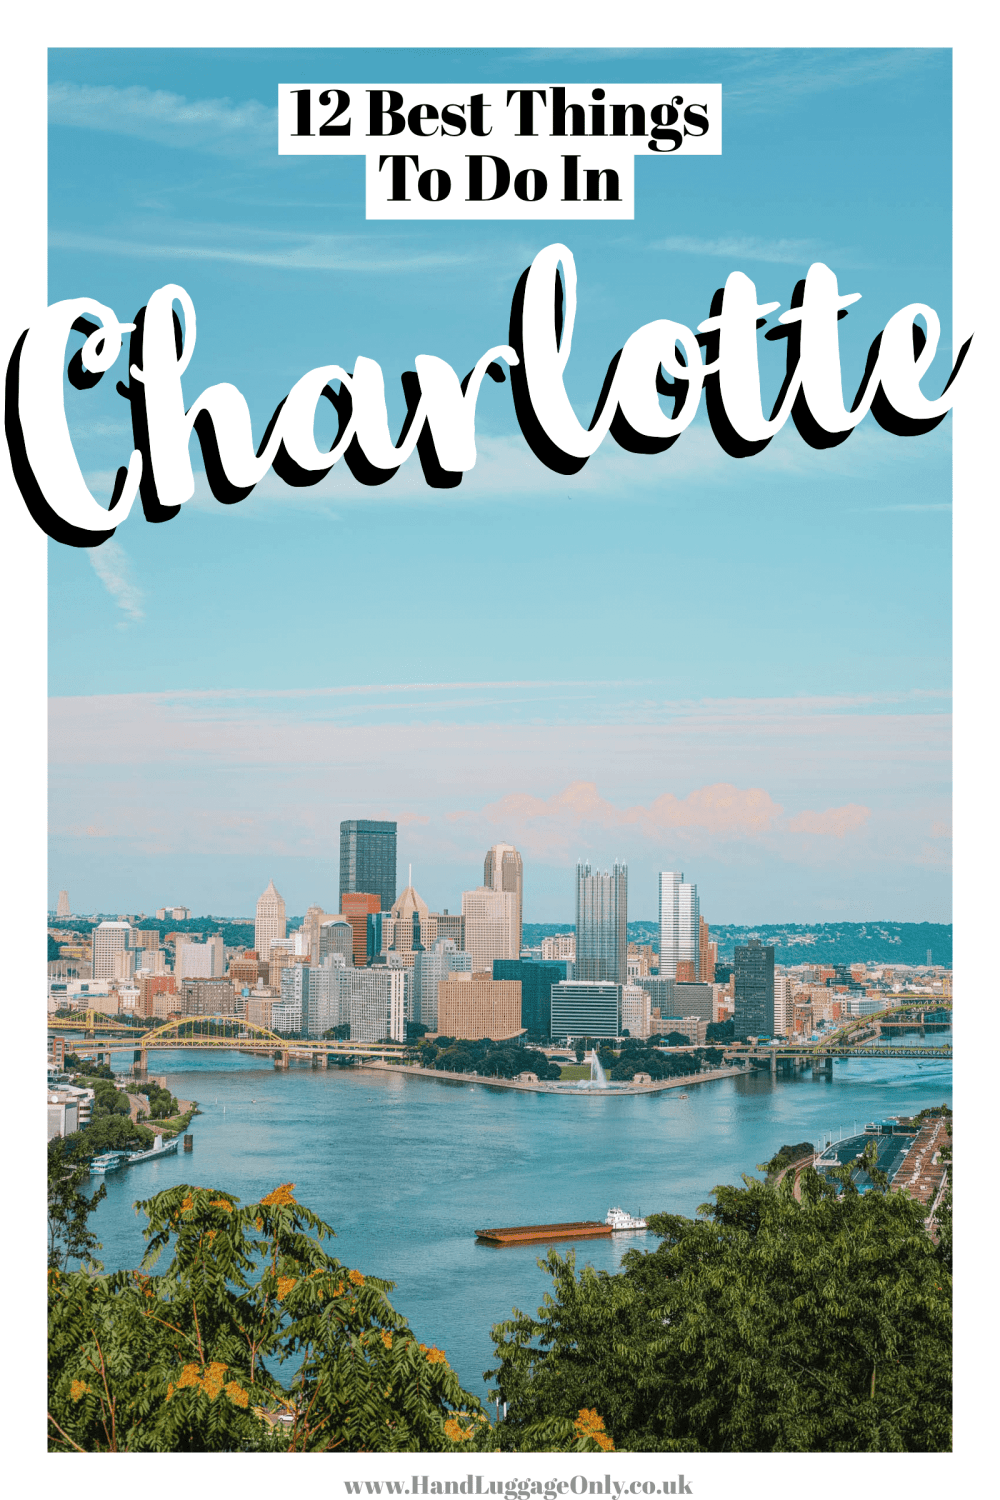 Best Things To Do In Charlotte (1)